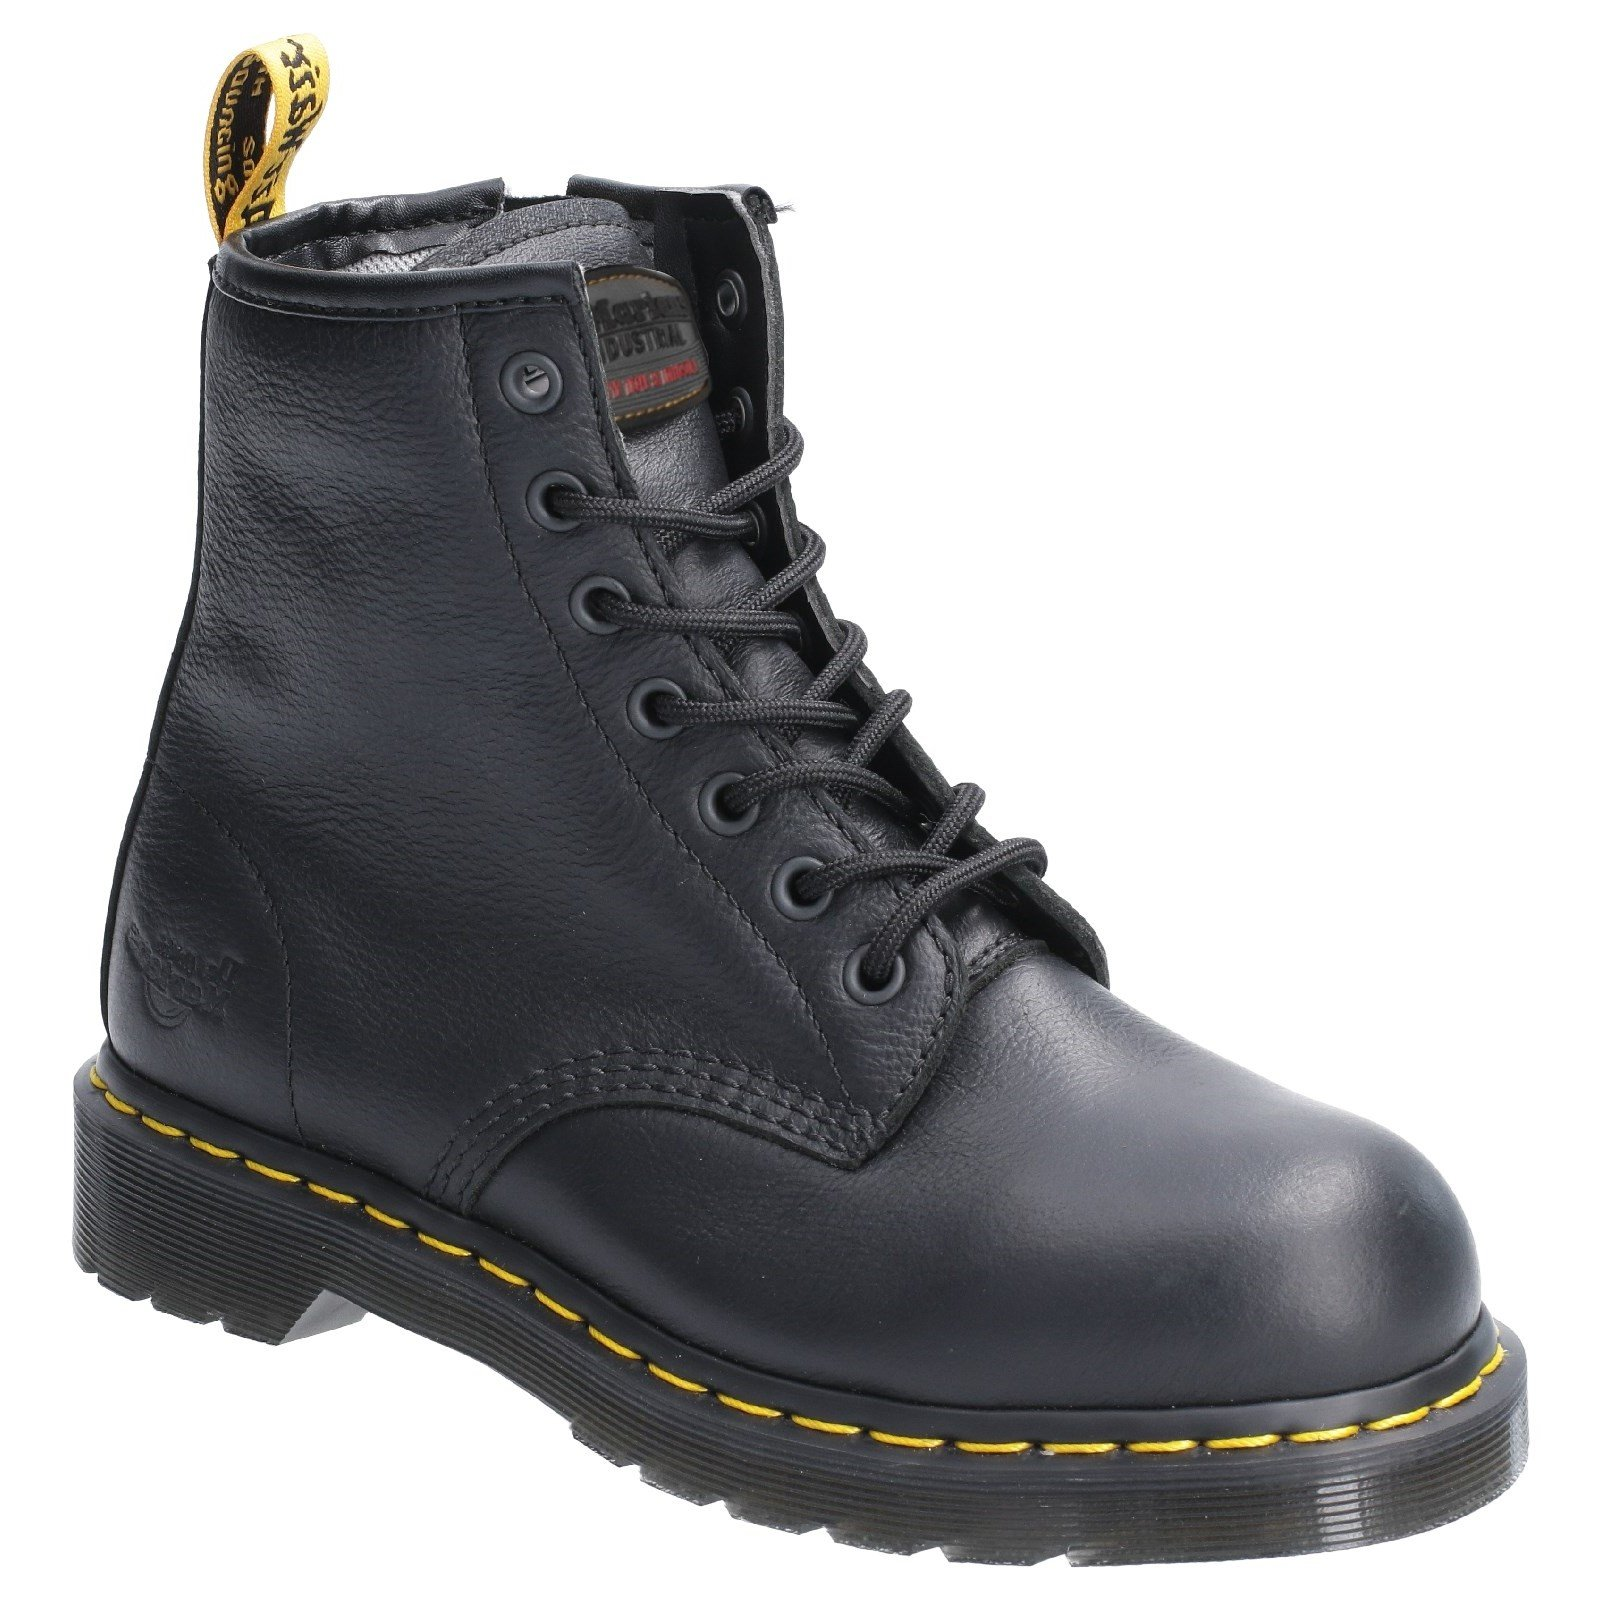 Dr Martens Women's Maple Zip Lace Up Safety Boot Various Colours 29515 - Black 6